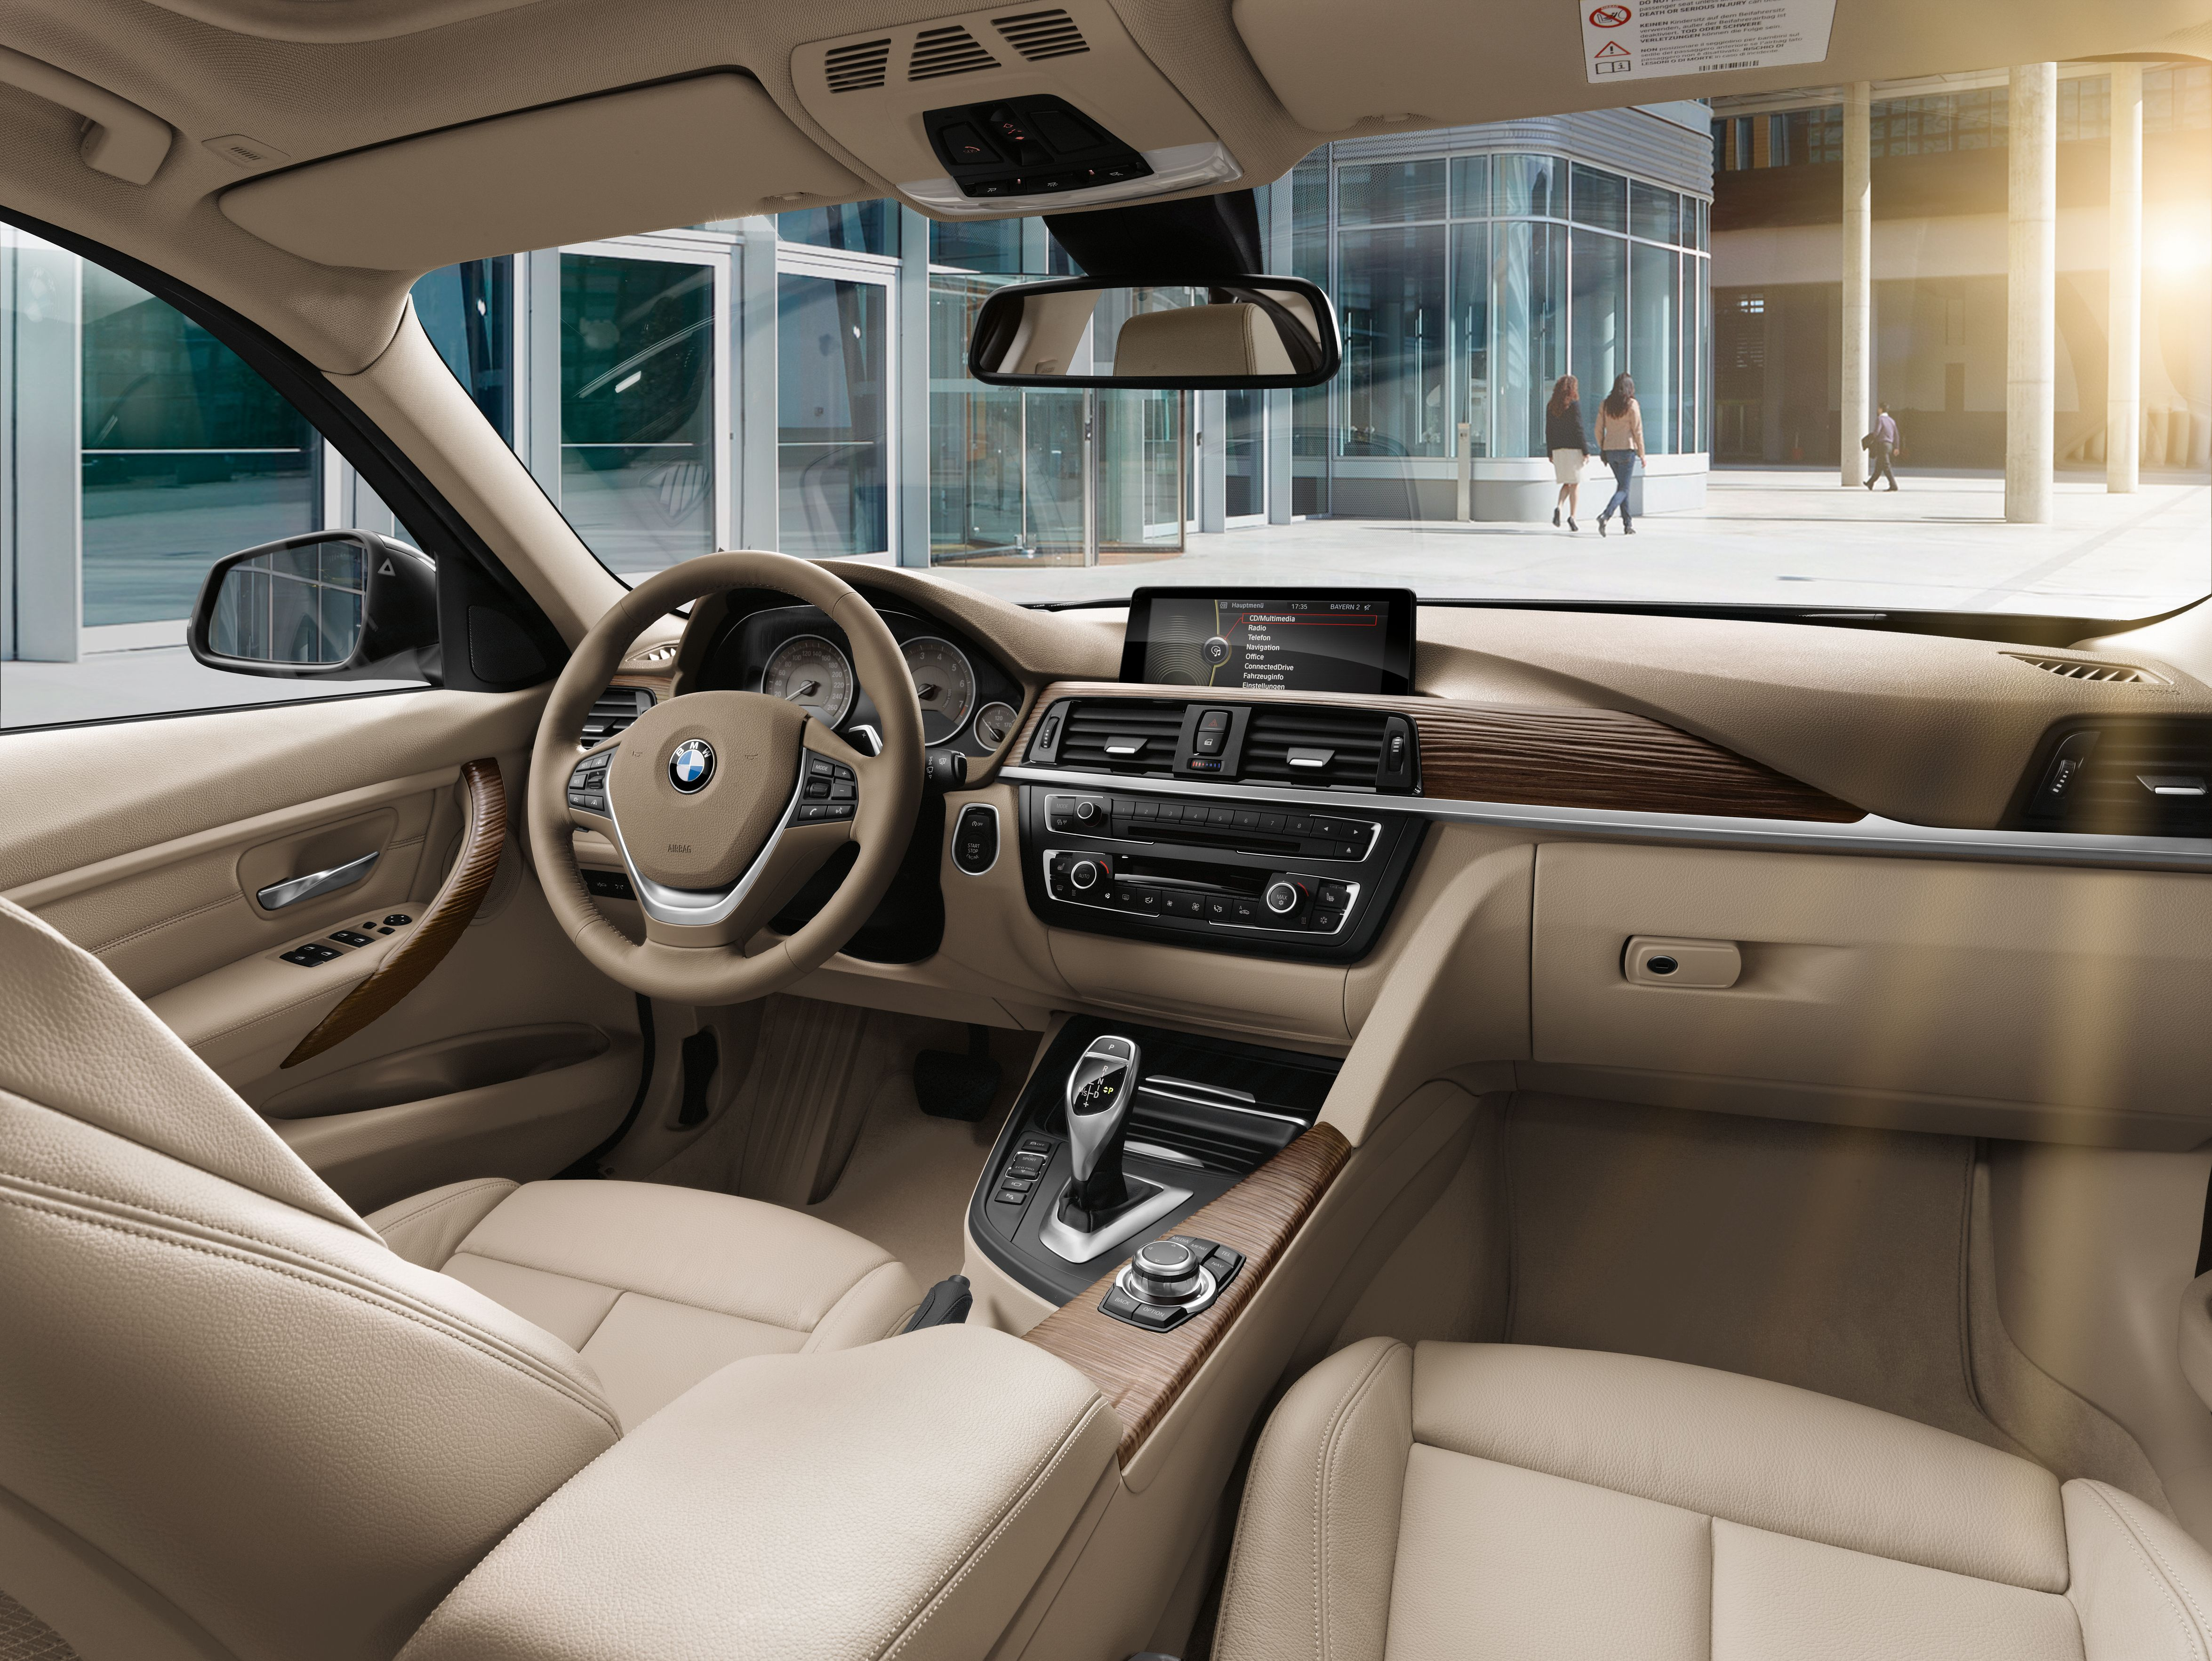 medium resolution of inside the bmw 3 series sedan the noticeable increase in space benefits the rear passengers above all bmw cars passenger noticeable space